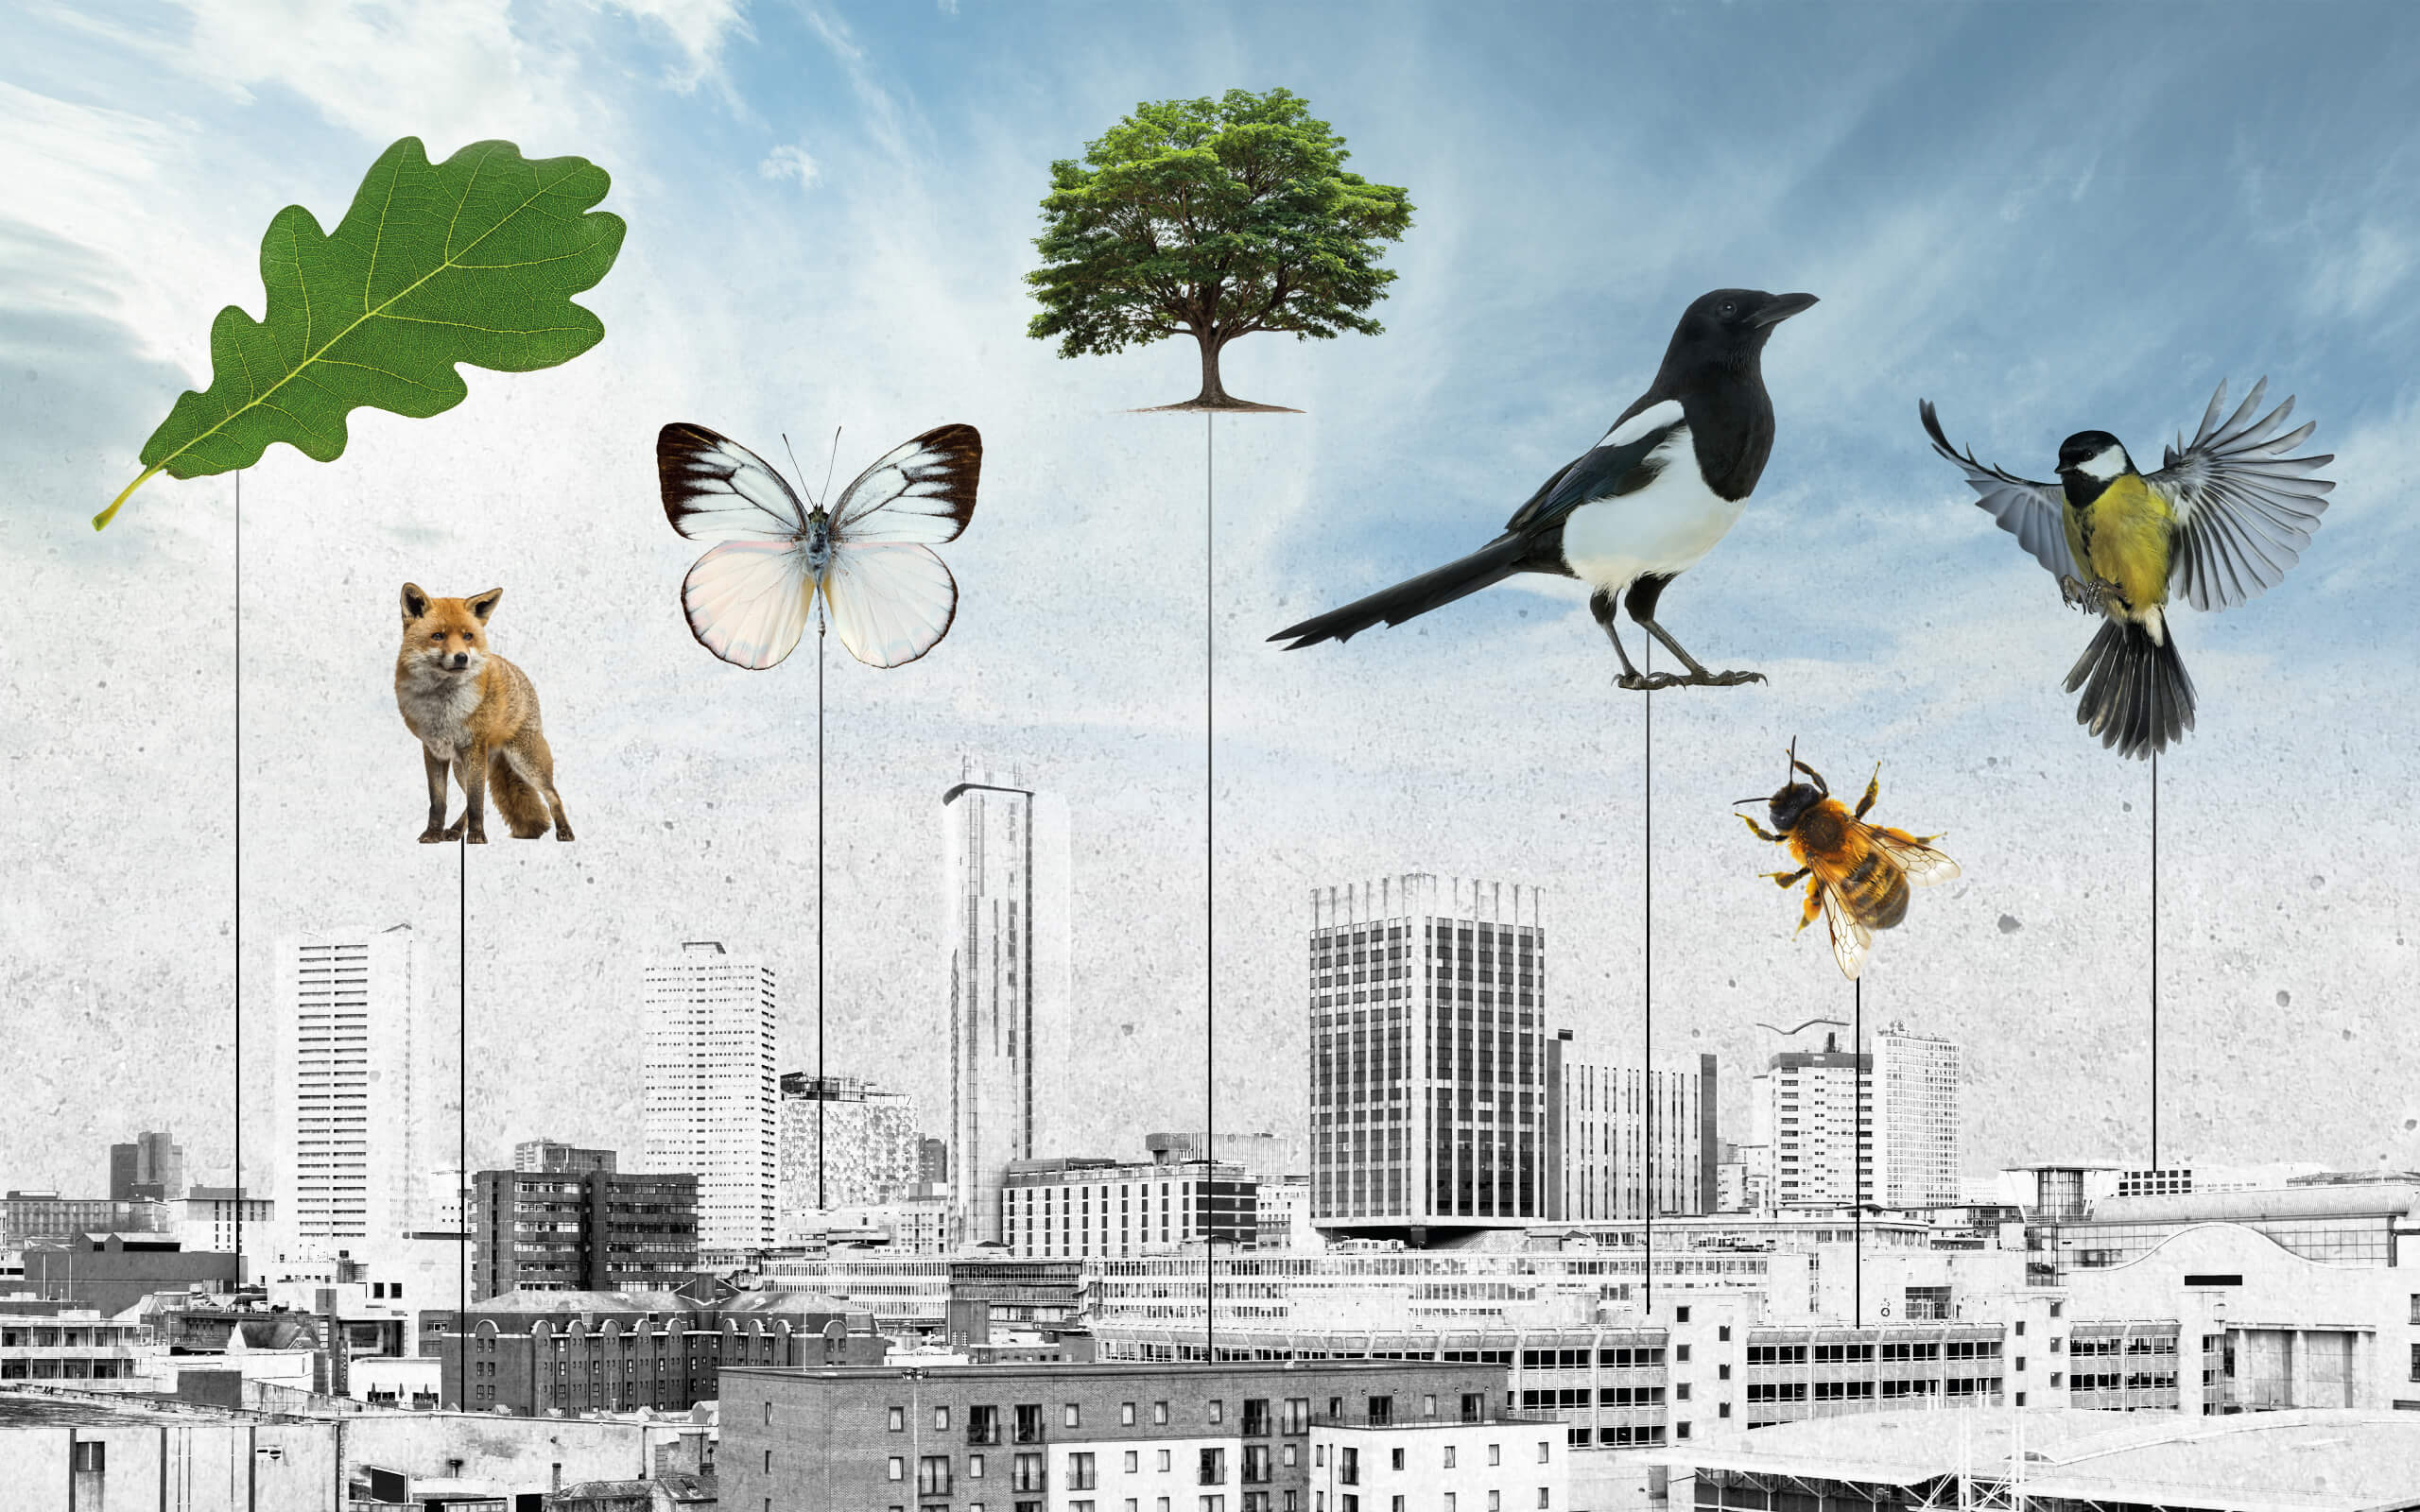 A city backdrop of skyscrapers and urban buildings, with nature images overlaid, including birds, butterflies and leaves